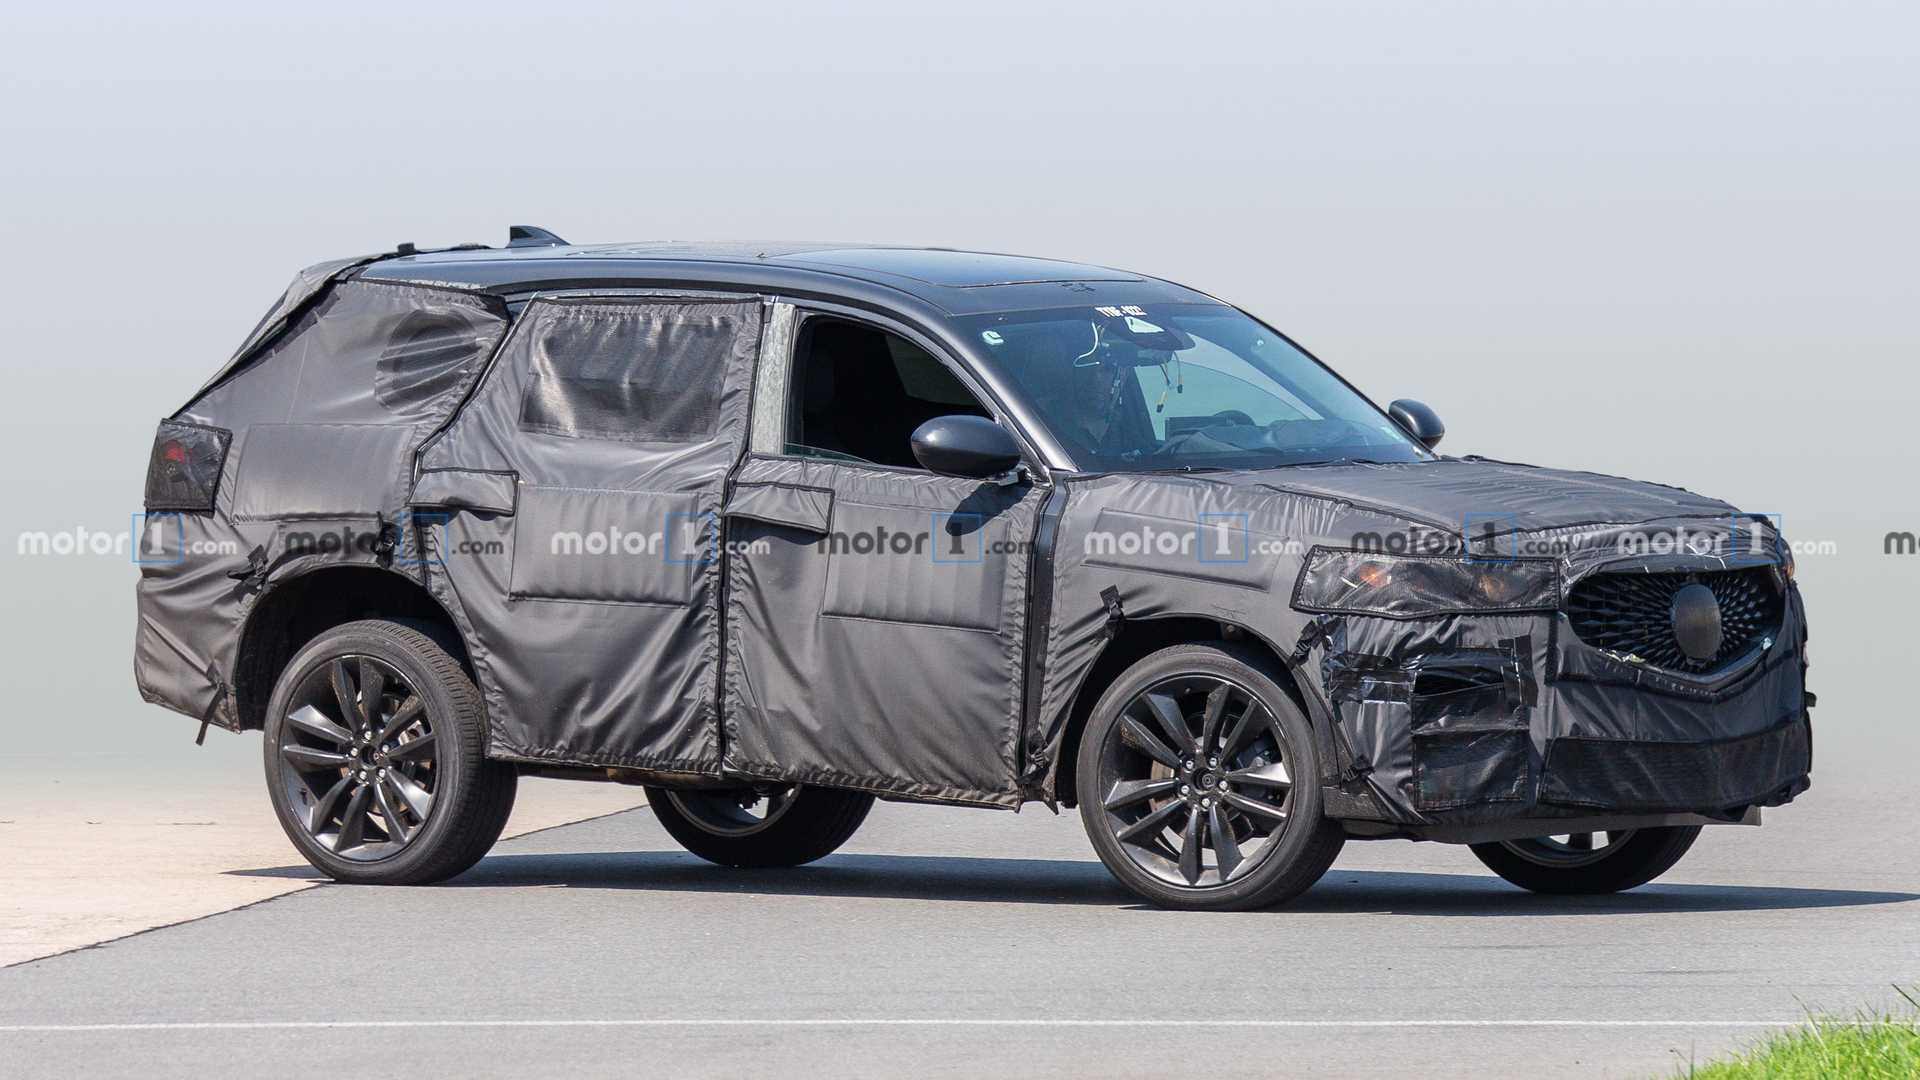 74 All New Acura Mdx 2020 Review And Release Date